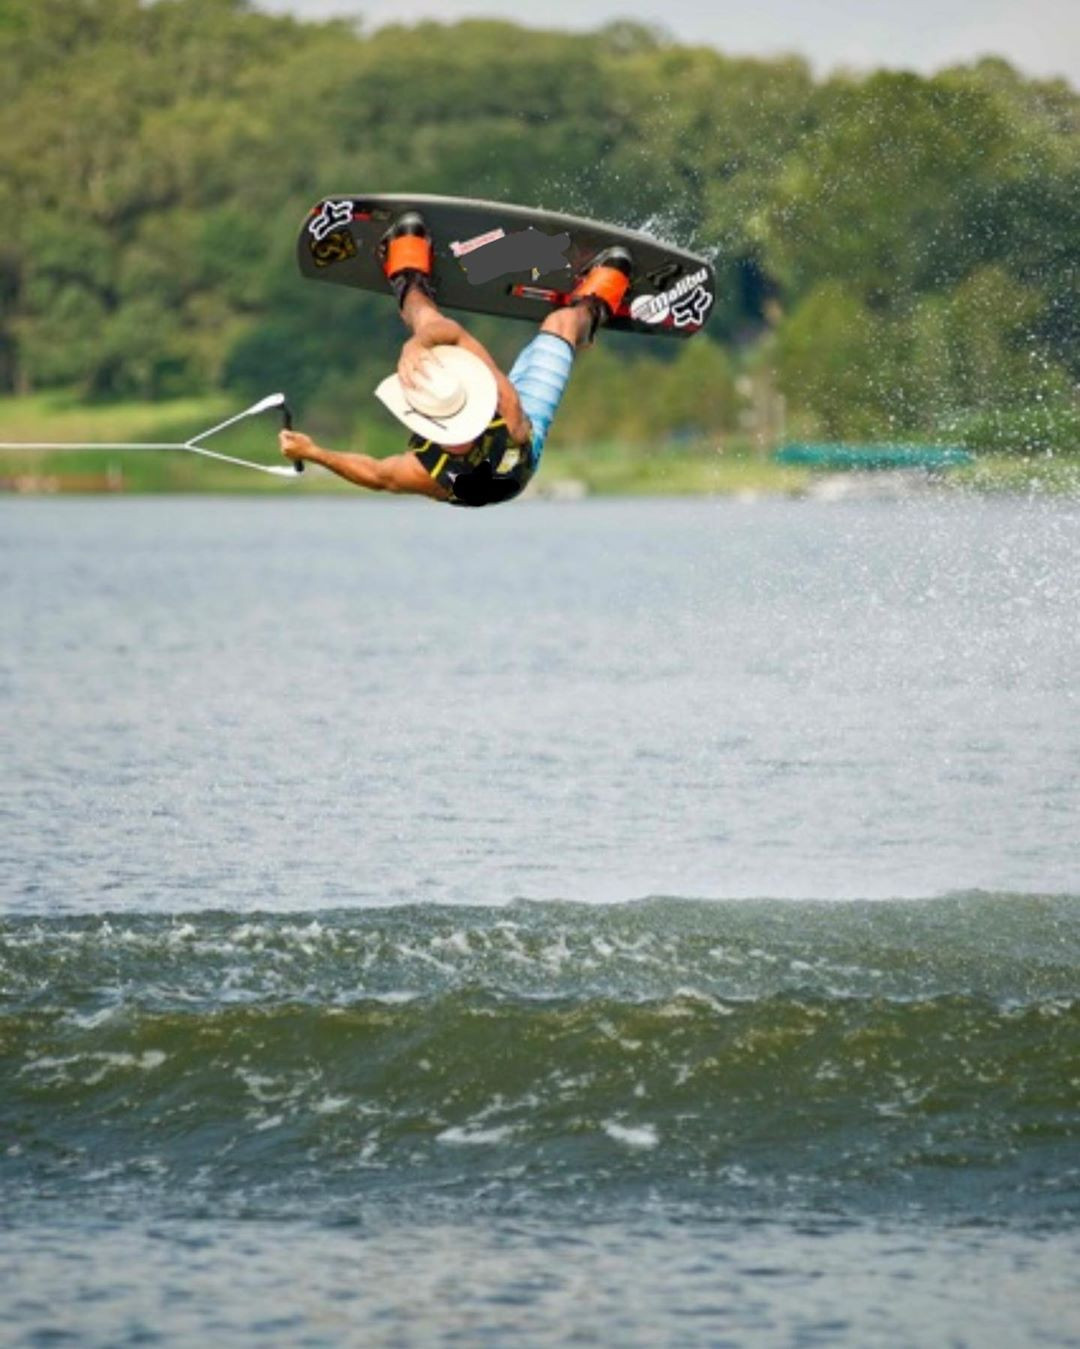 Donald Cerrone enjoys wakeboarding at a nearby lake